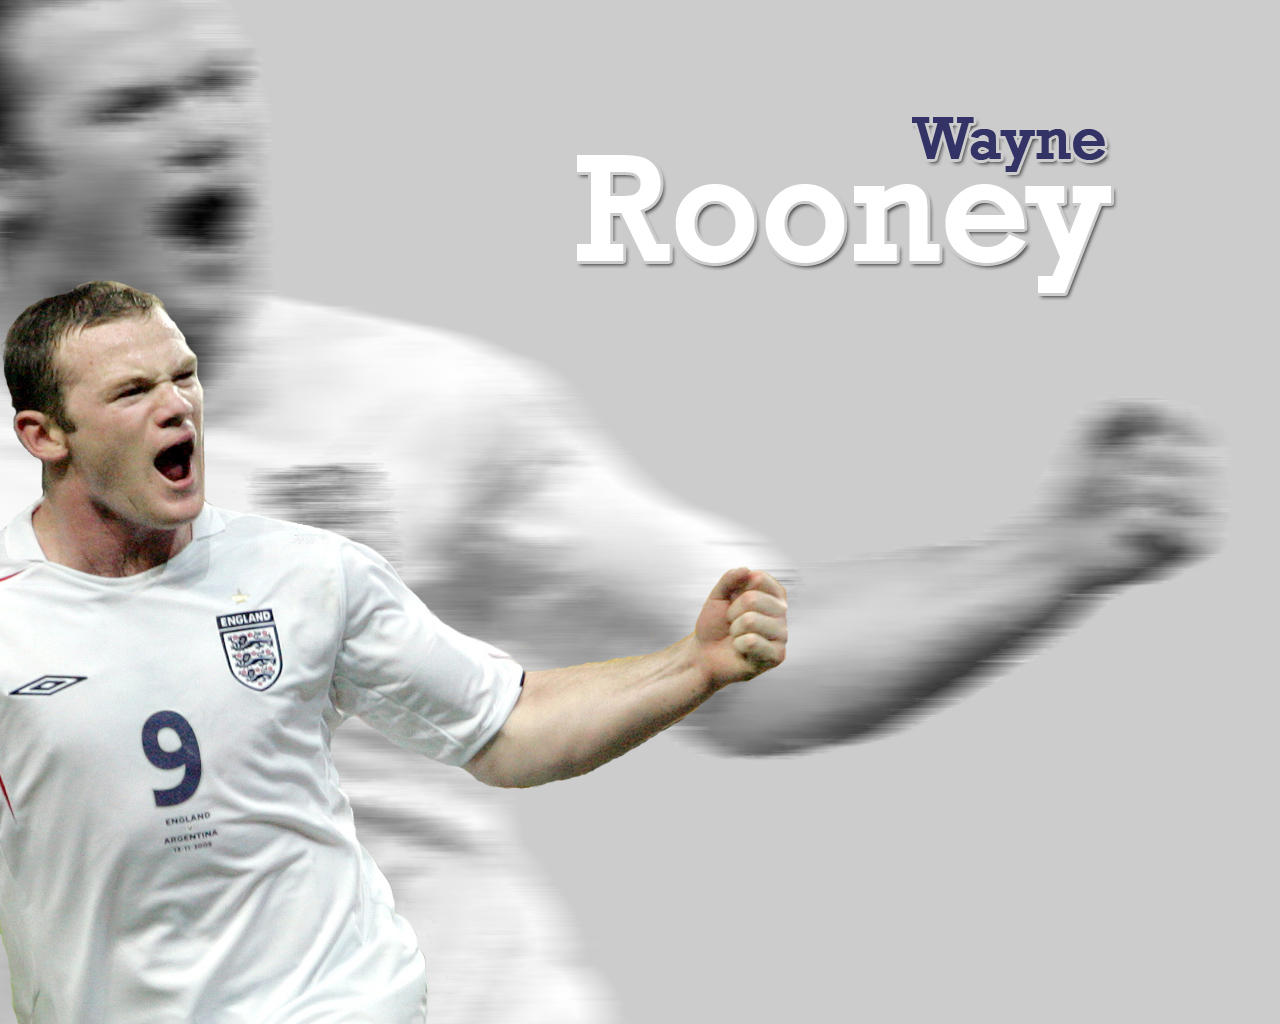 The Most Expensive Soccer Player Wayne Rooney in Dubai